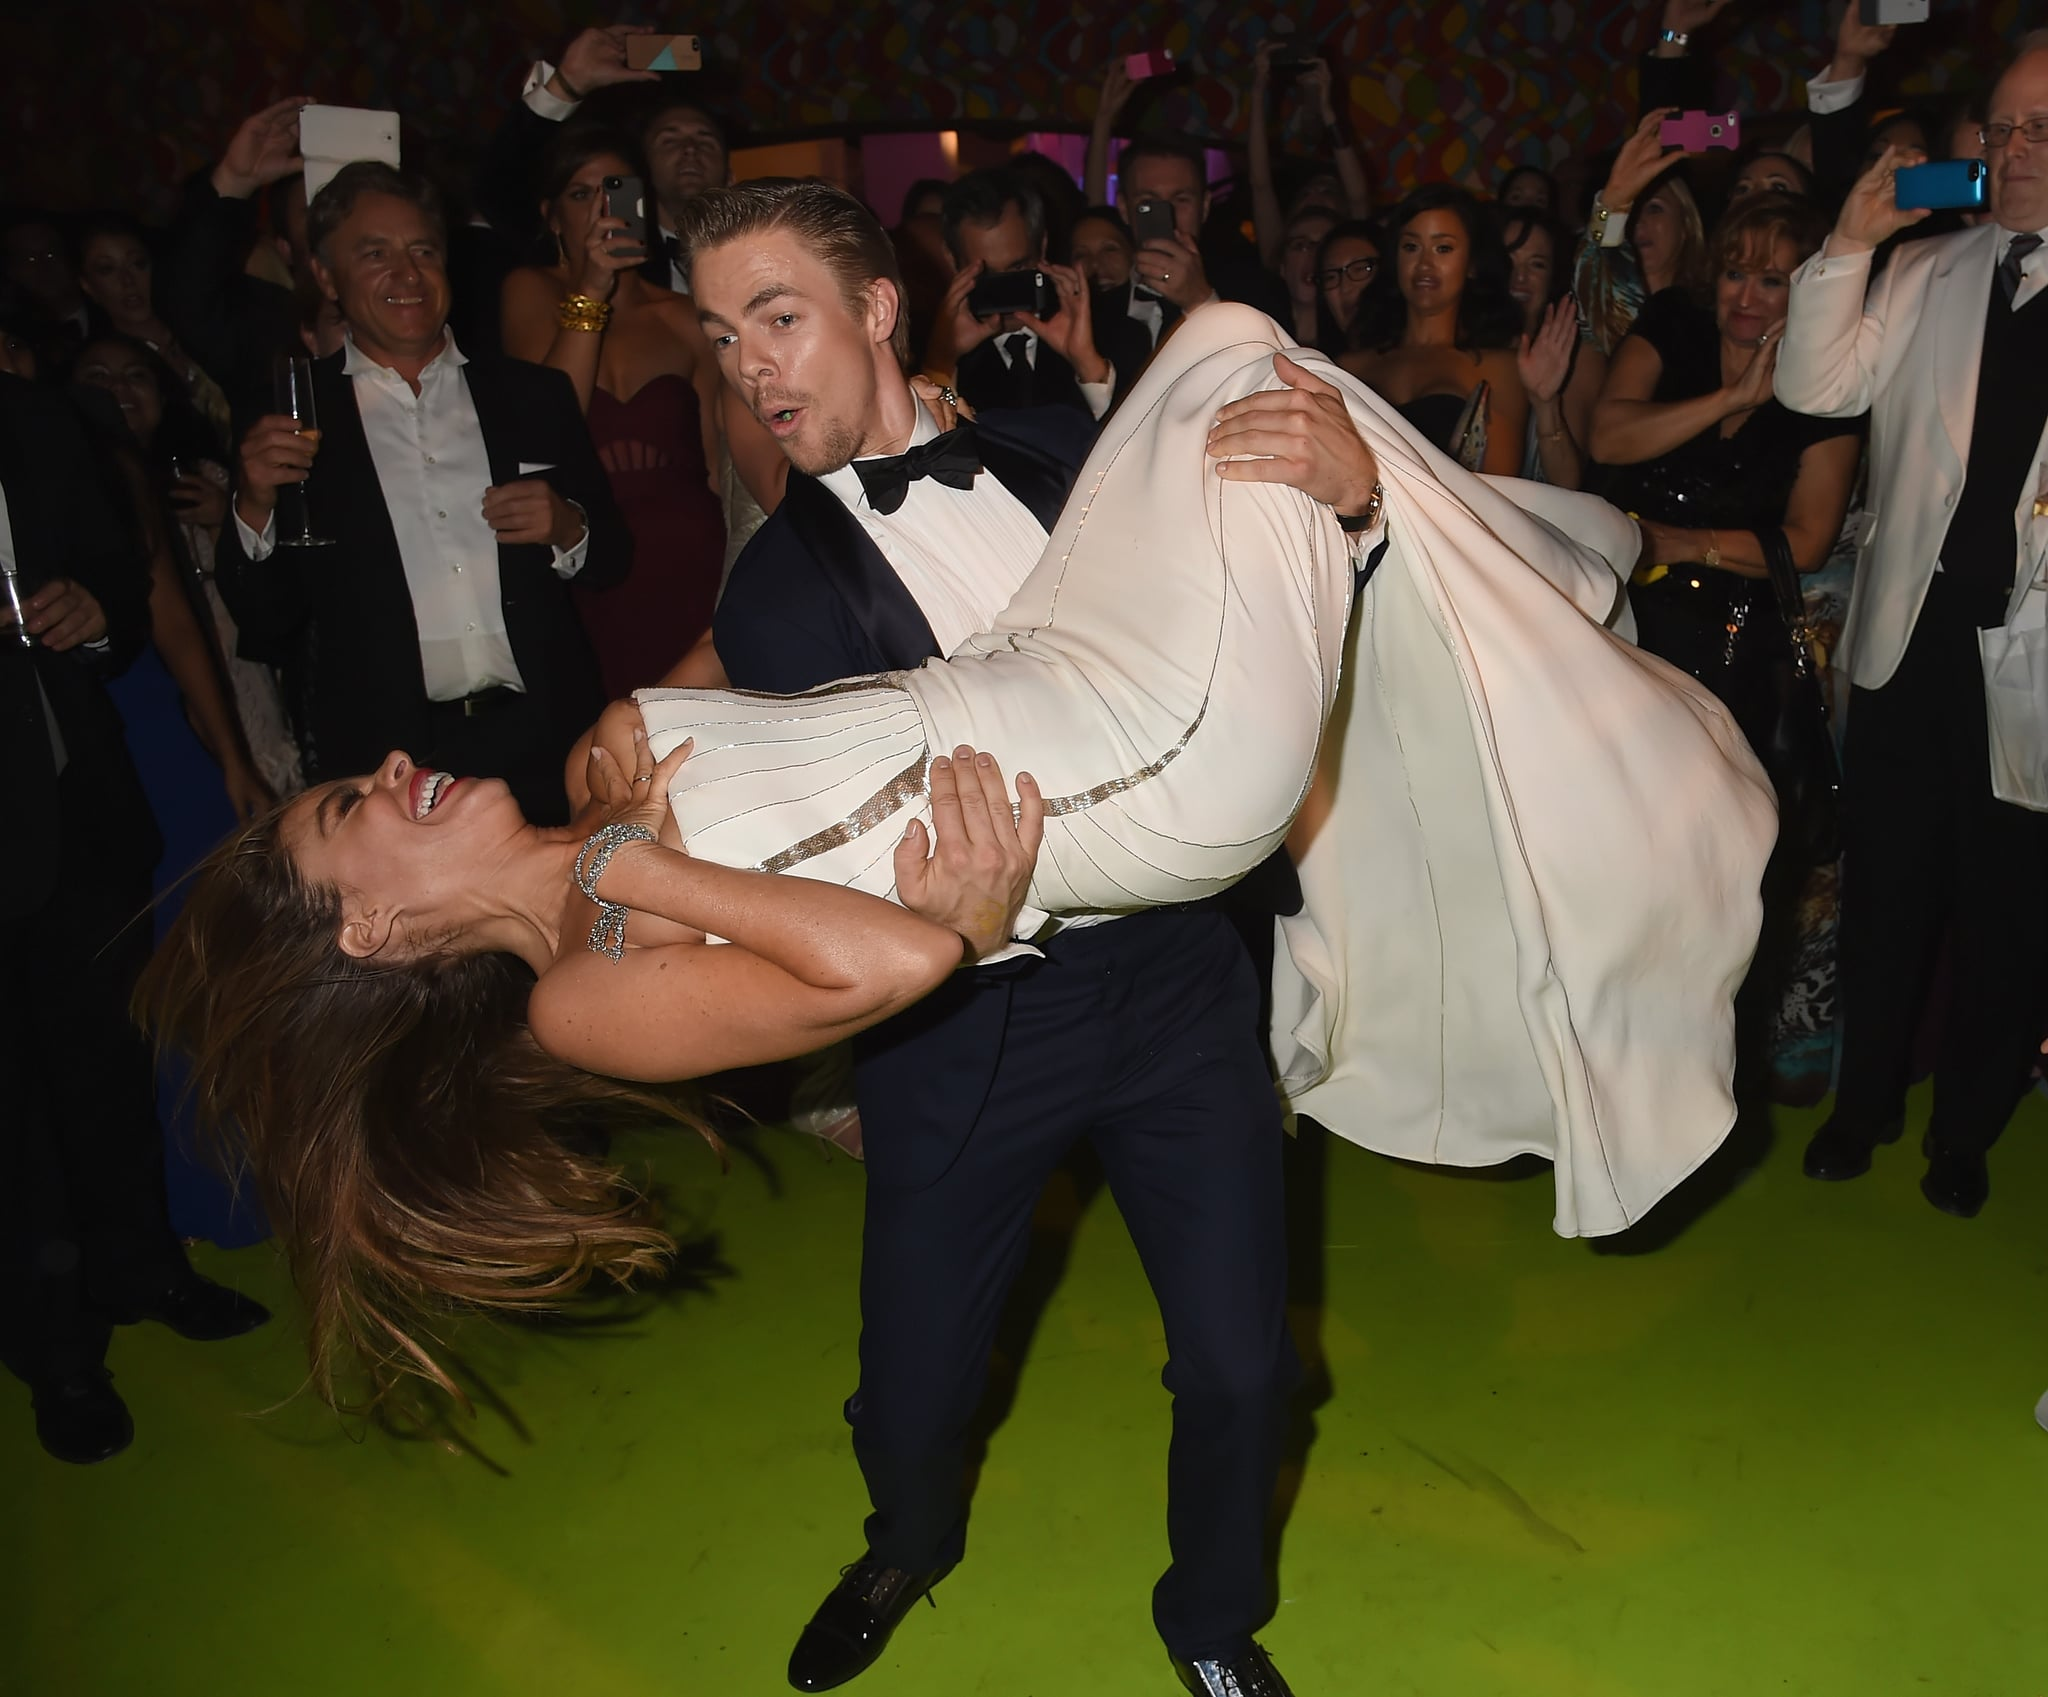 At one point, Derek even picked Sofia up and swung her around the dance floor.